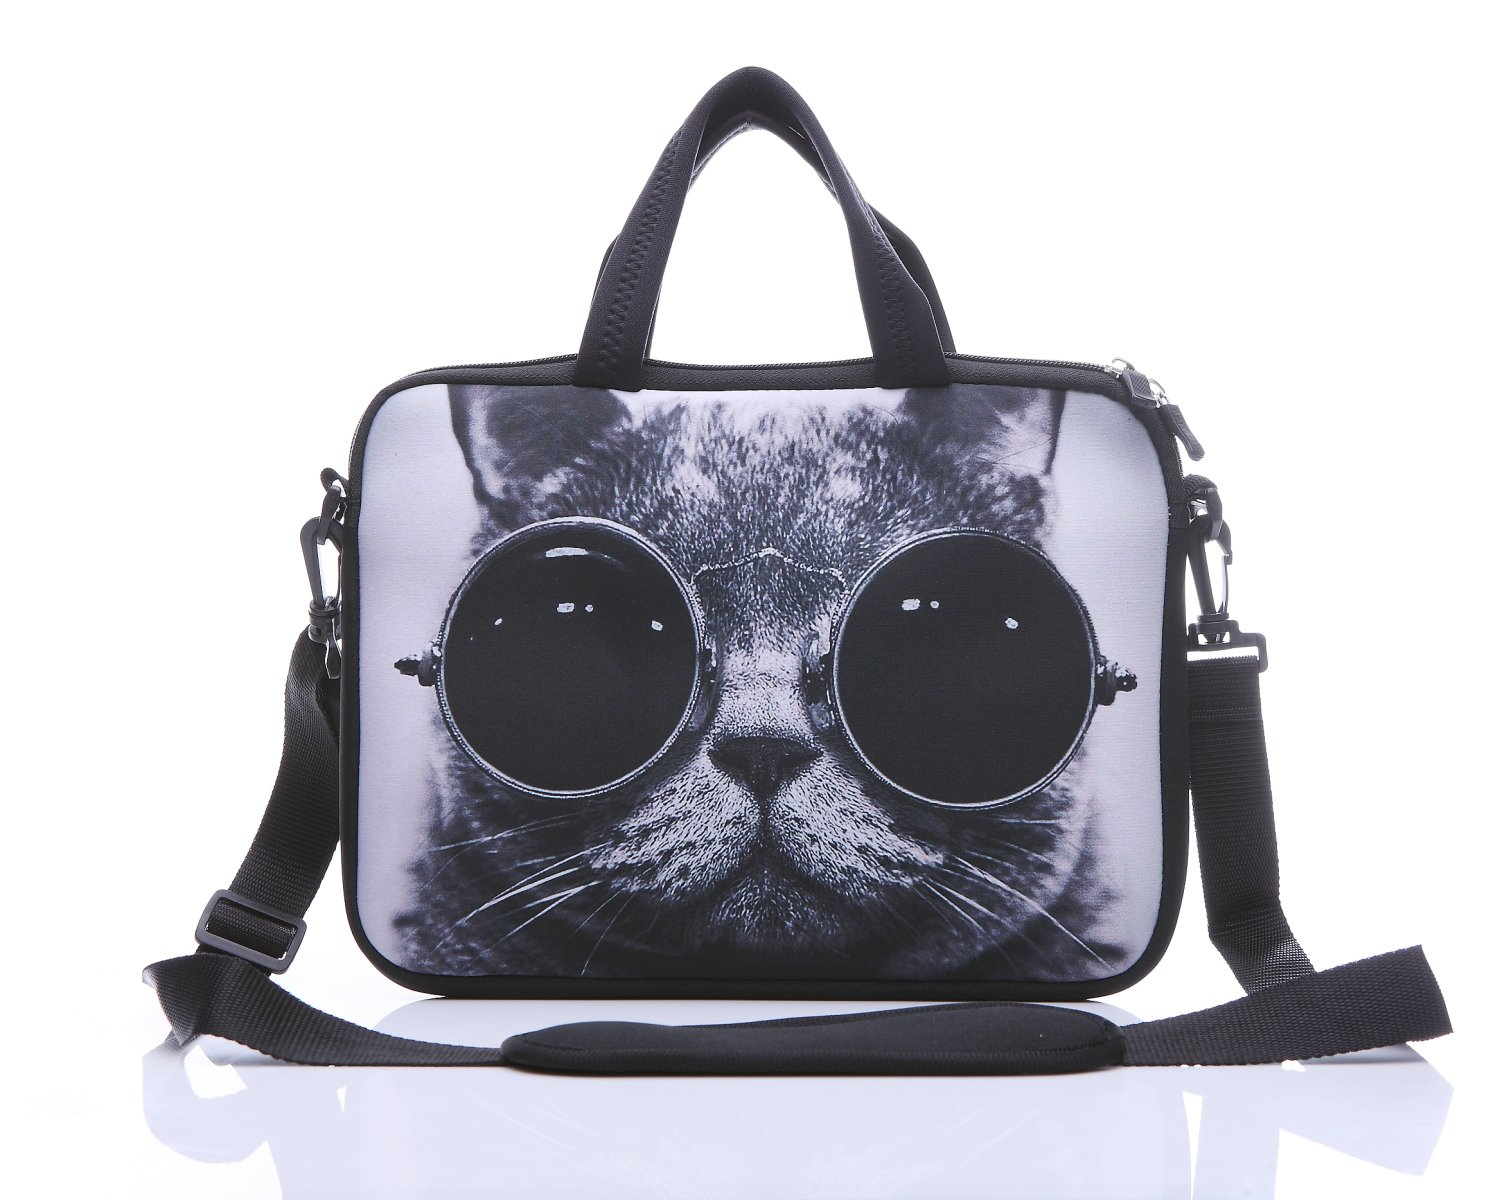 11-Inch to 12-Inch Neoprene Laptop Sleeve Case Bag with shoulder strap For 11'' , 11.6'' , 12'' Ultrabook/Acer/ Asus/Dell/HP/Toshiba/Lenovo/Chromebook (Grey cat with sunglasses)